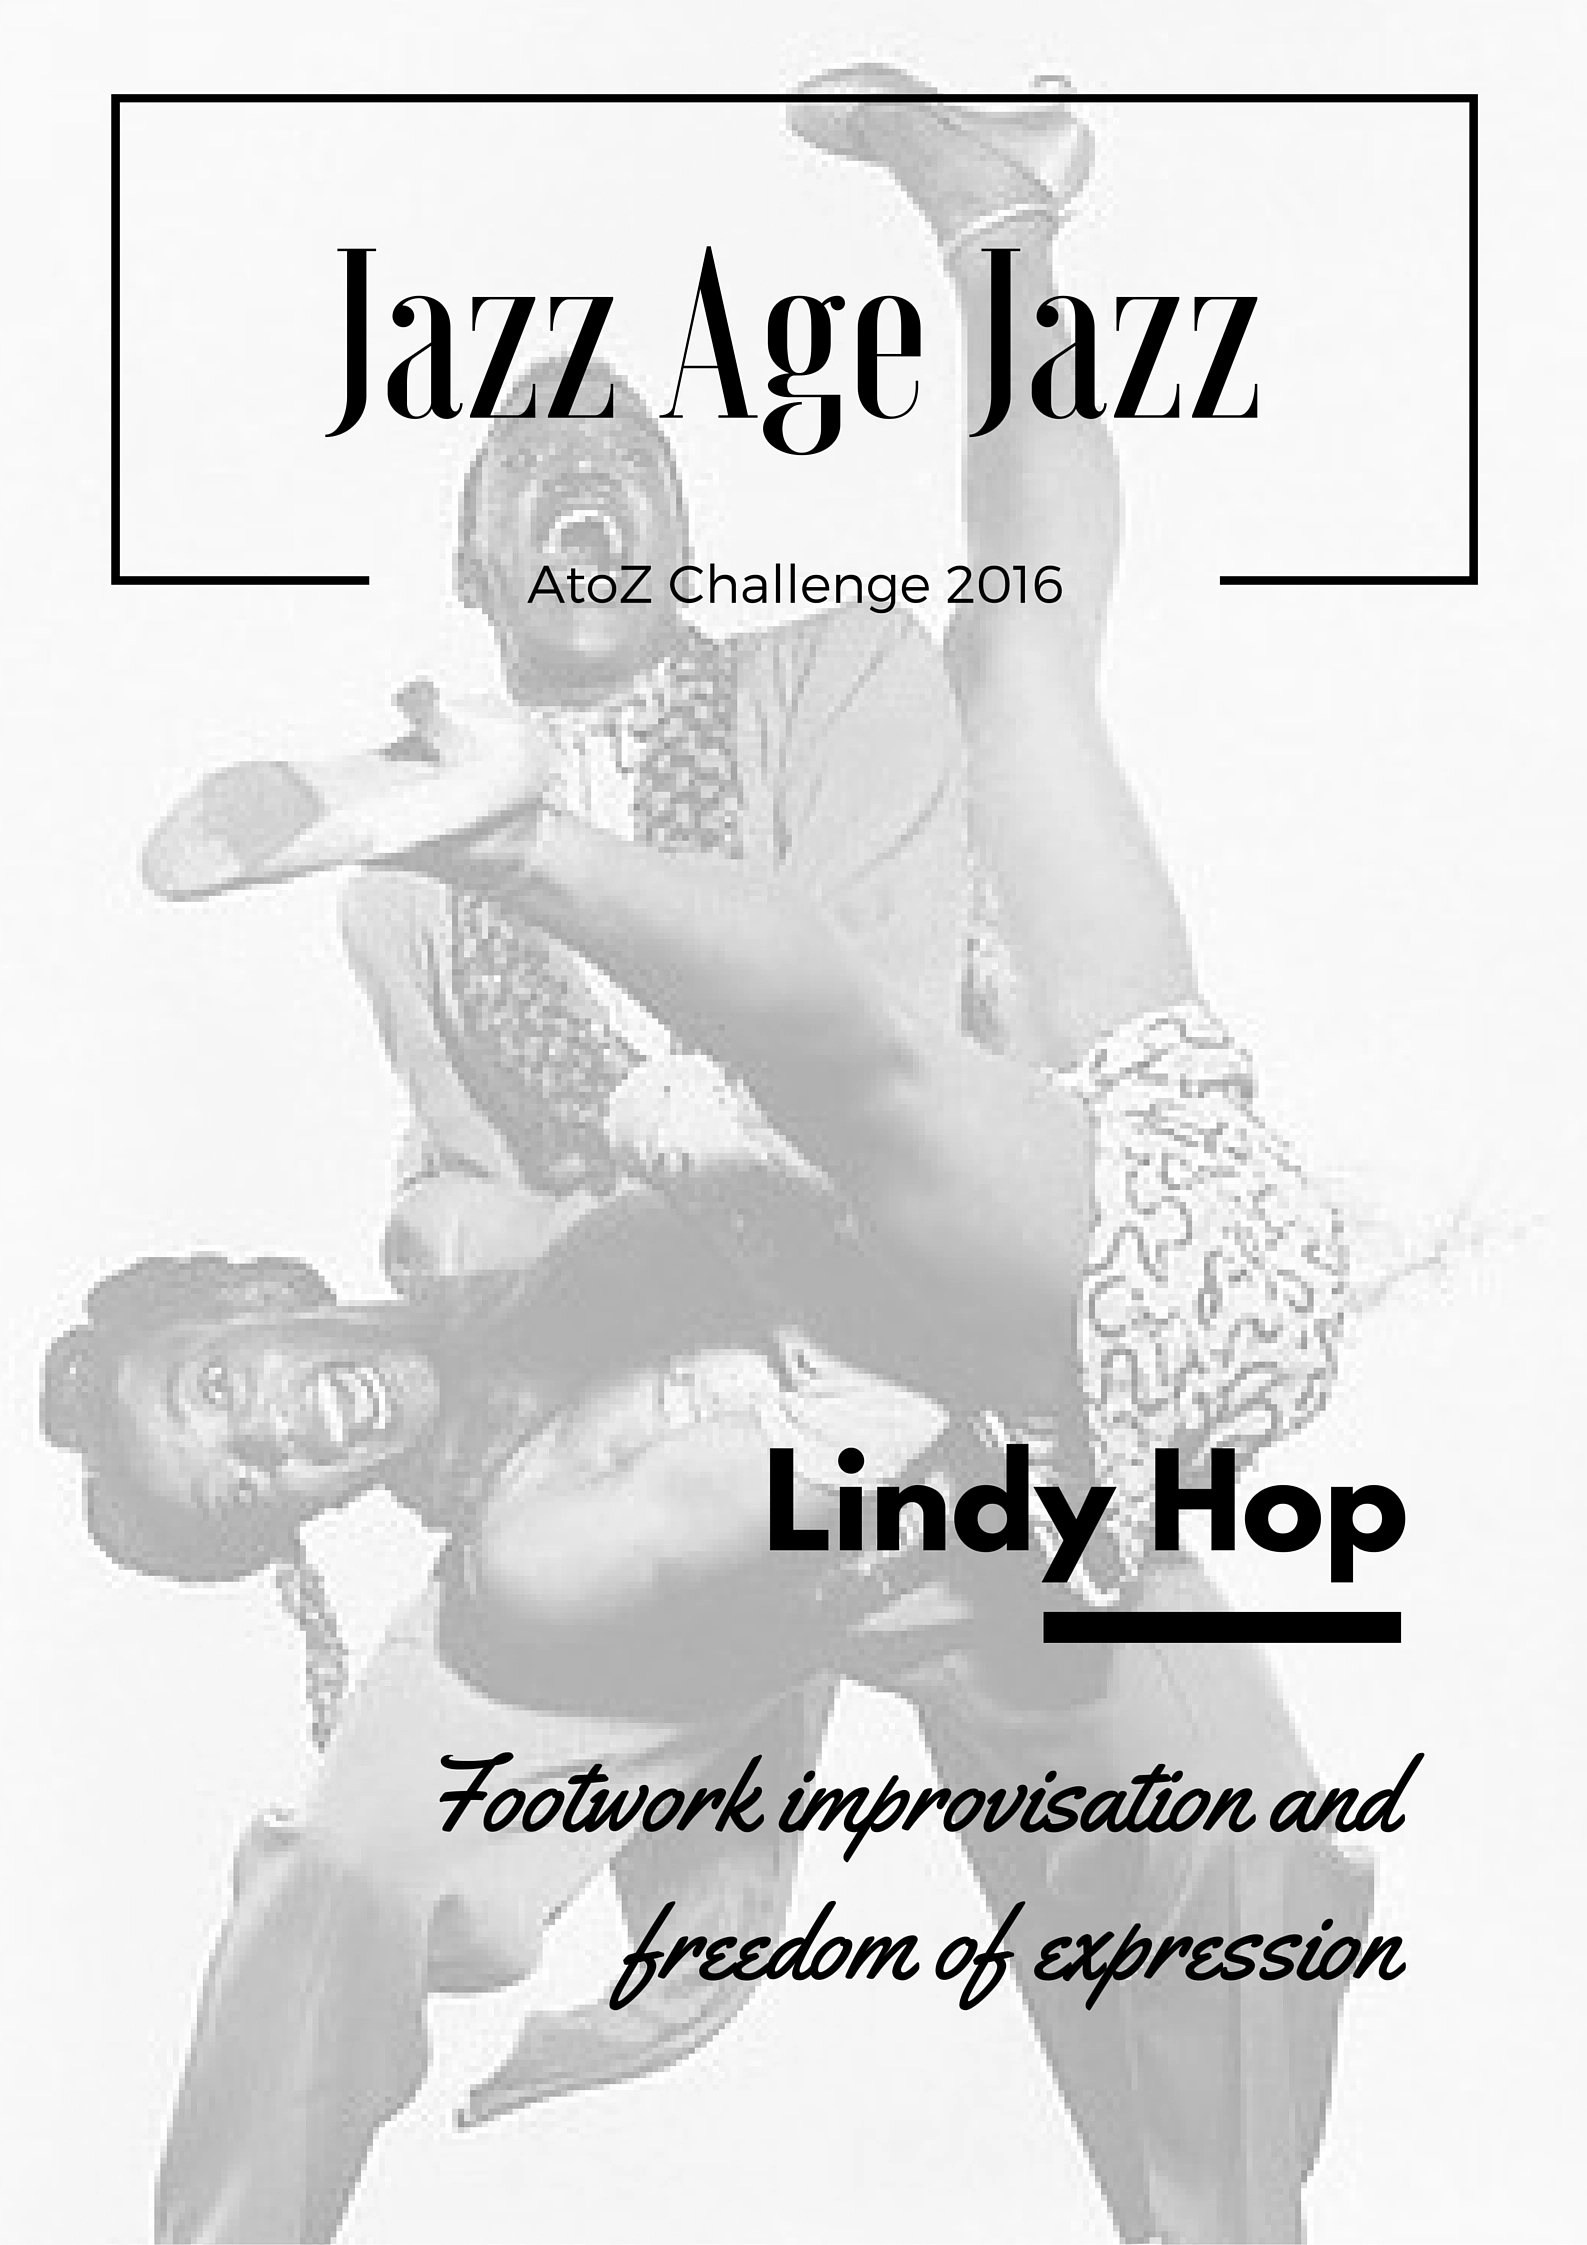 Jazz Age Jazz - Lindy Hop: footwork improvisation and freedom of expression